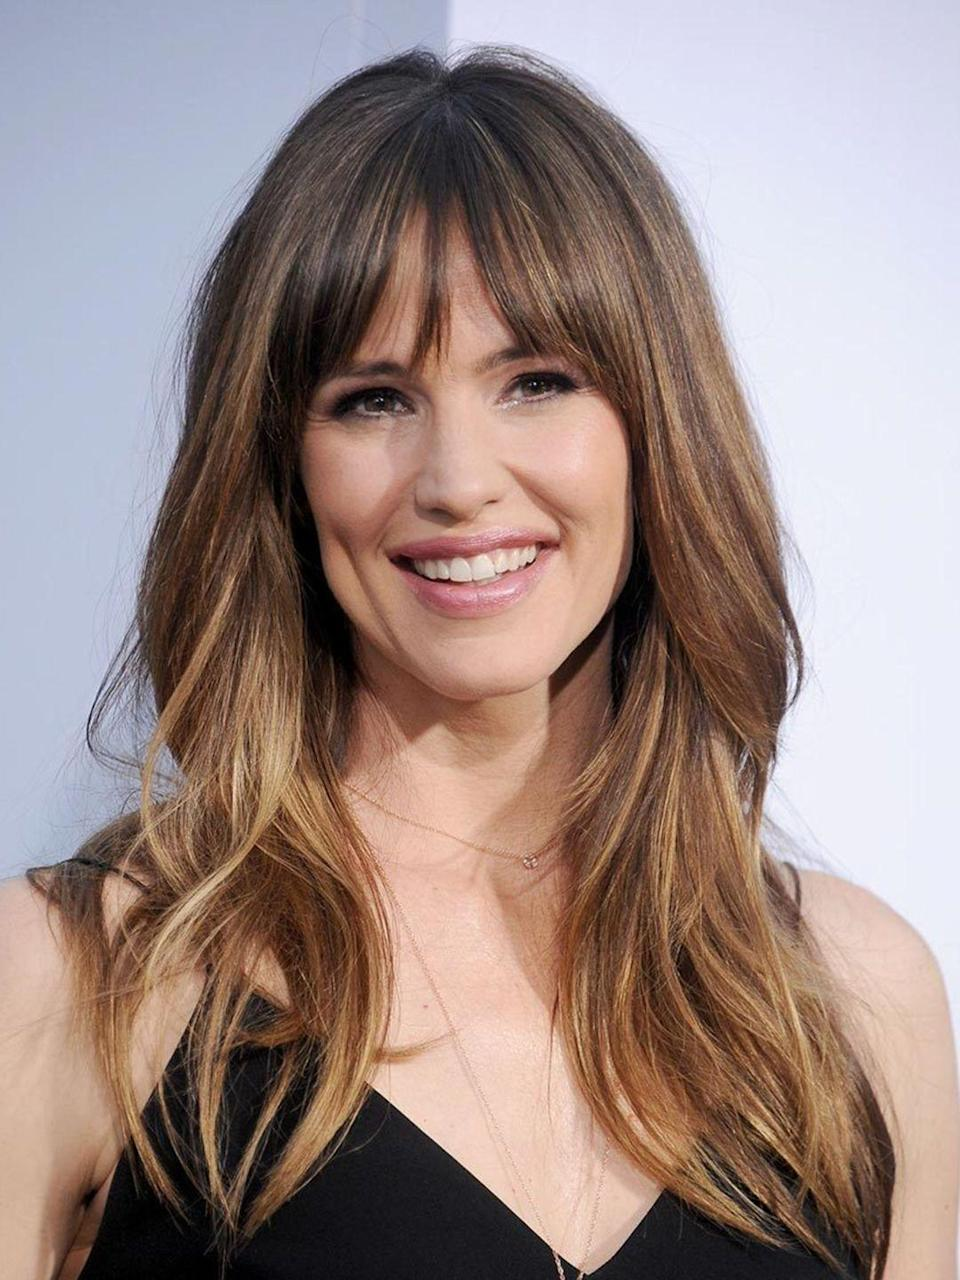 """<p>That fringe + cute smile = perfect girl next door look. The balayage keeps it looking modern and all you need is a good quality hairdryer to blowdry that fringe seriously smooth.</p><p><strong>ELLE Loves...</strong>T3 Featherweight Compact Hairdryer - £125 <a class=""""link rapid-noclick-resp"""" href=""""https://go.redirectingat.com?id=127X1599956&url=https%3A%2F%2Fwww.net-a-porter.com%2Fgb%2Fen%2Fproduct%2F649131%2FT3%2Ffeatherweight-compact-hairdryer&sref=https%3A%2F%2Fwww.elle.com%2Fuk%2Fbeauty%2Fhair%2Fg14897%2Ffringe-benefits%2F"""" rel=""""nofollow noopener"""" target=""""_blank"""" data-ylk=""""slk:SHOP NOW"""">SHOP NOW</a></p>"""